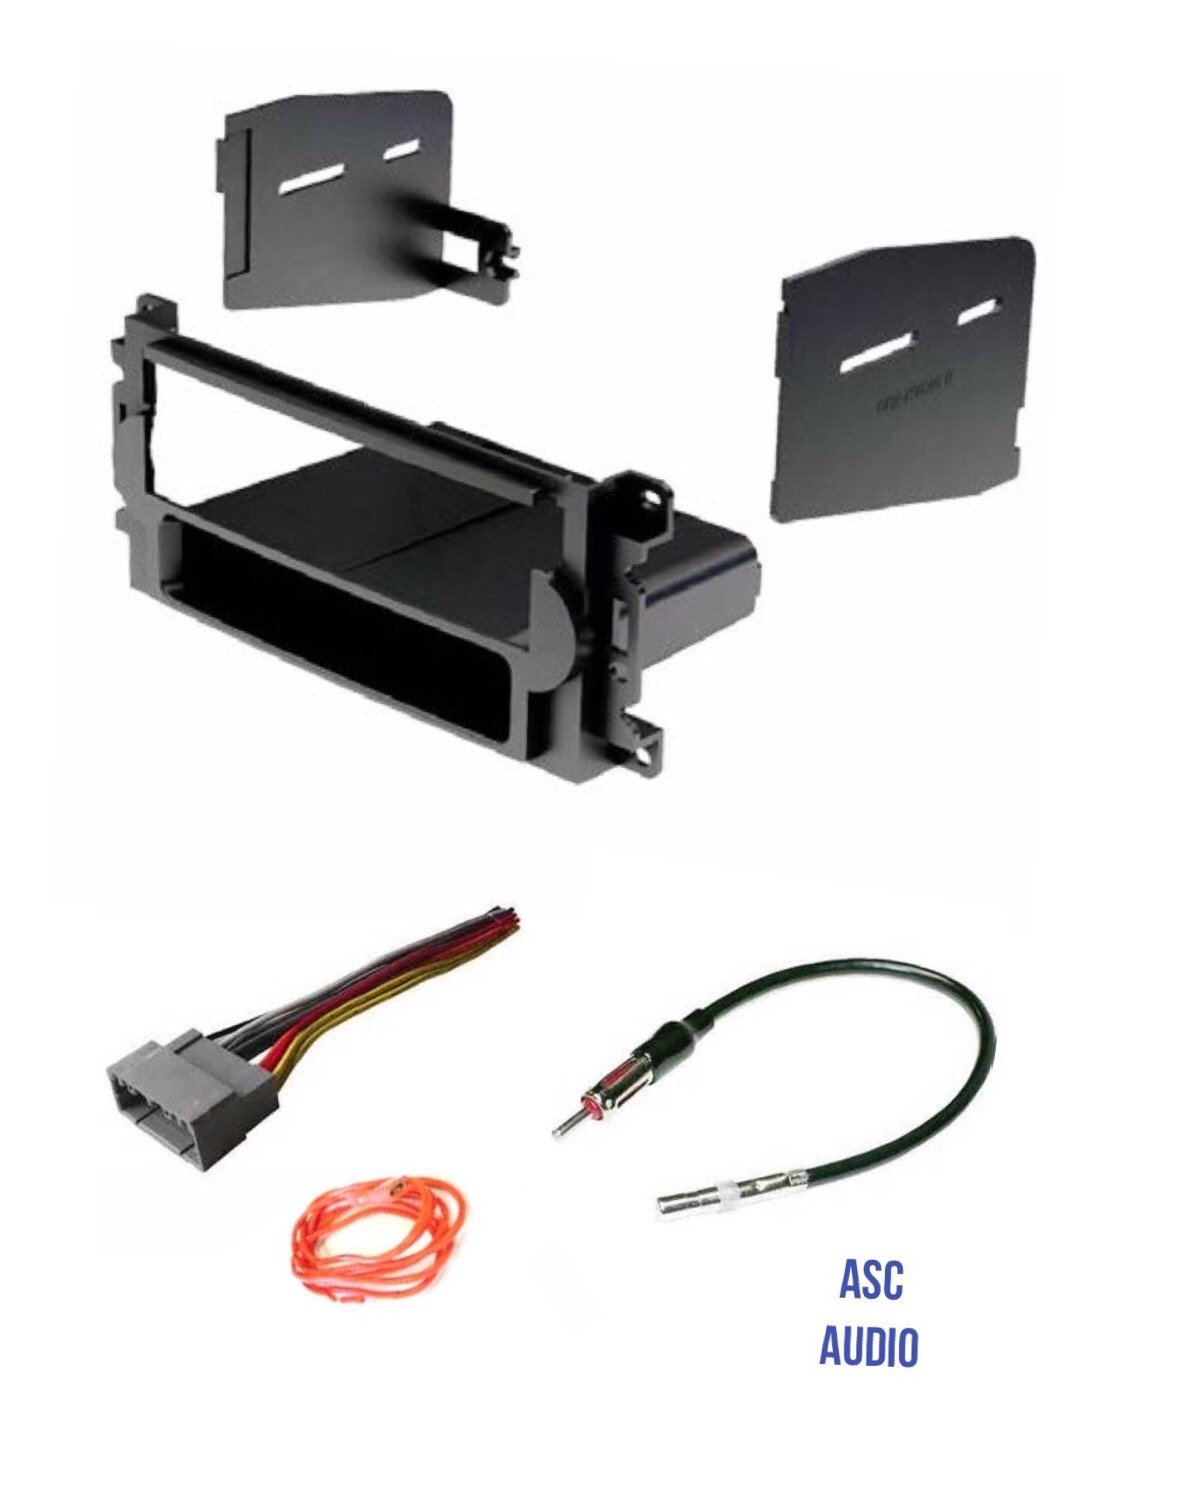 ASC Audio Car Stereo Radio Install Dash Kit, Wire Harness, and Antenna Adapter to Add a Single Din Radio for some Chrysler Dodge Jeep without Factory Navigation- Vehicles listed below by ASC Audio